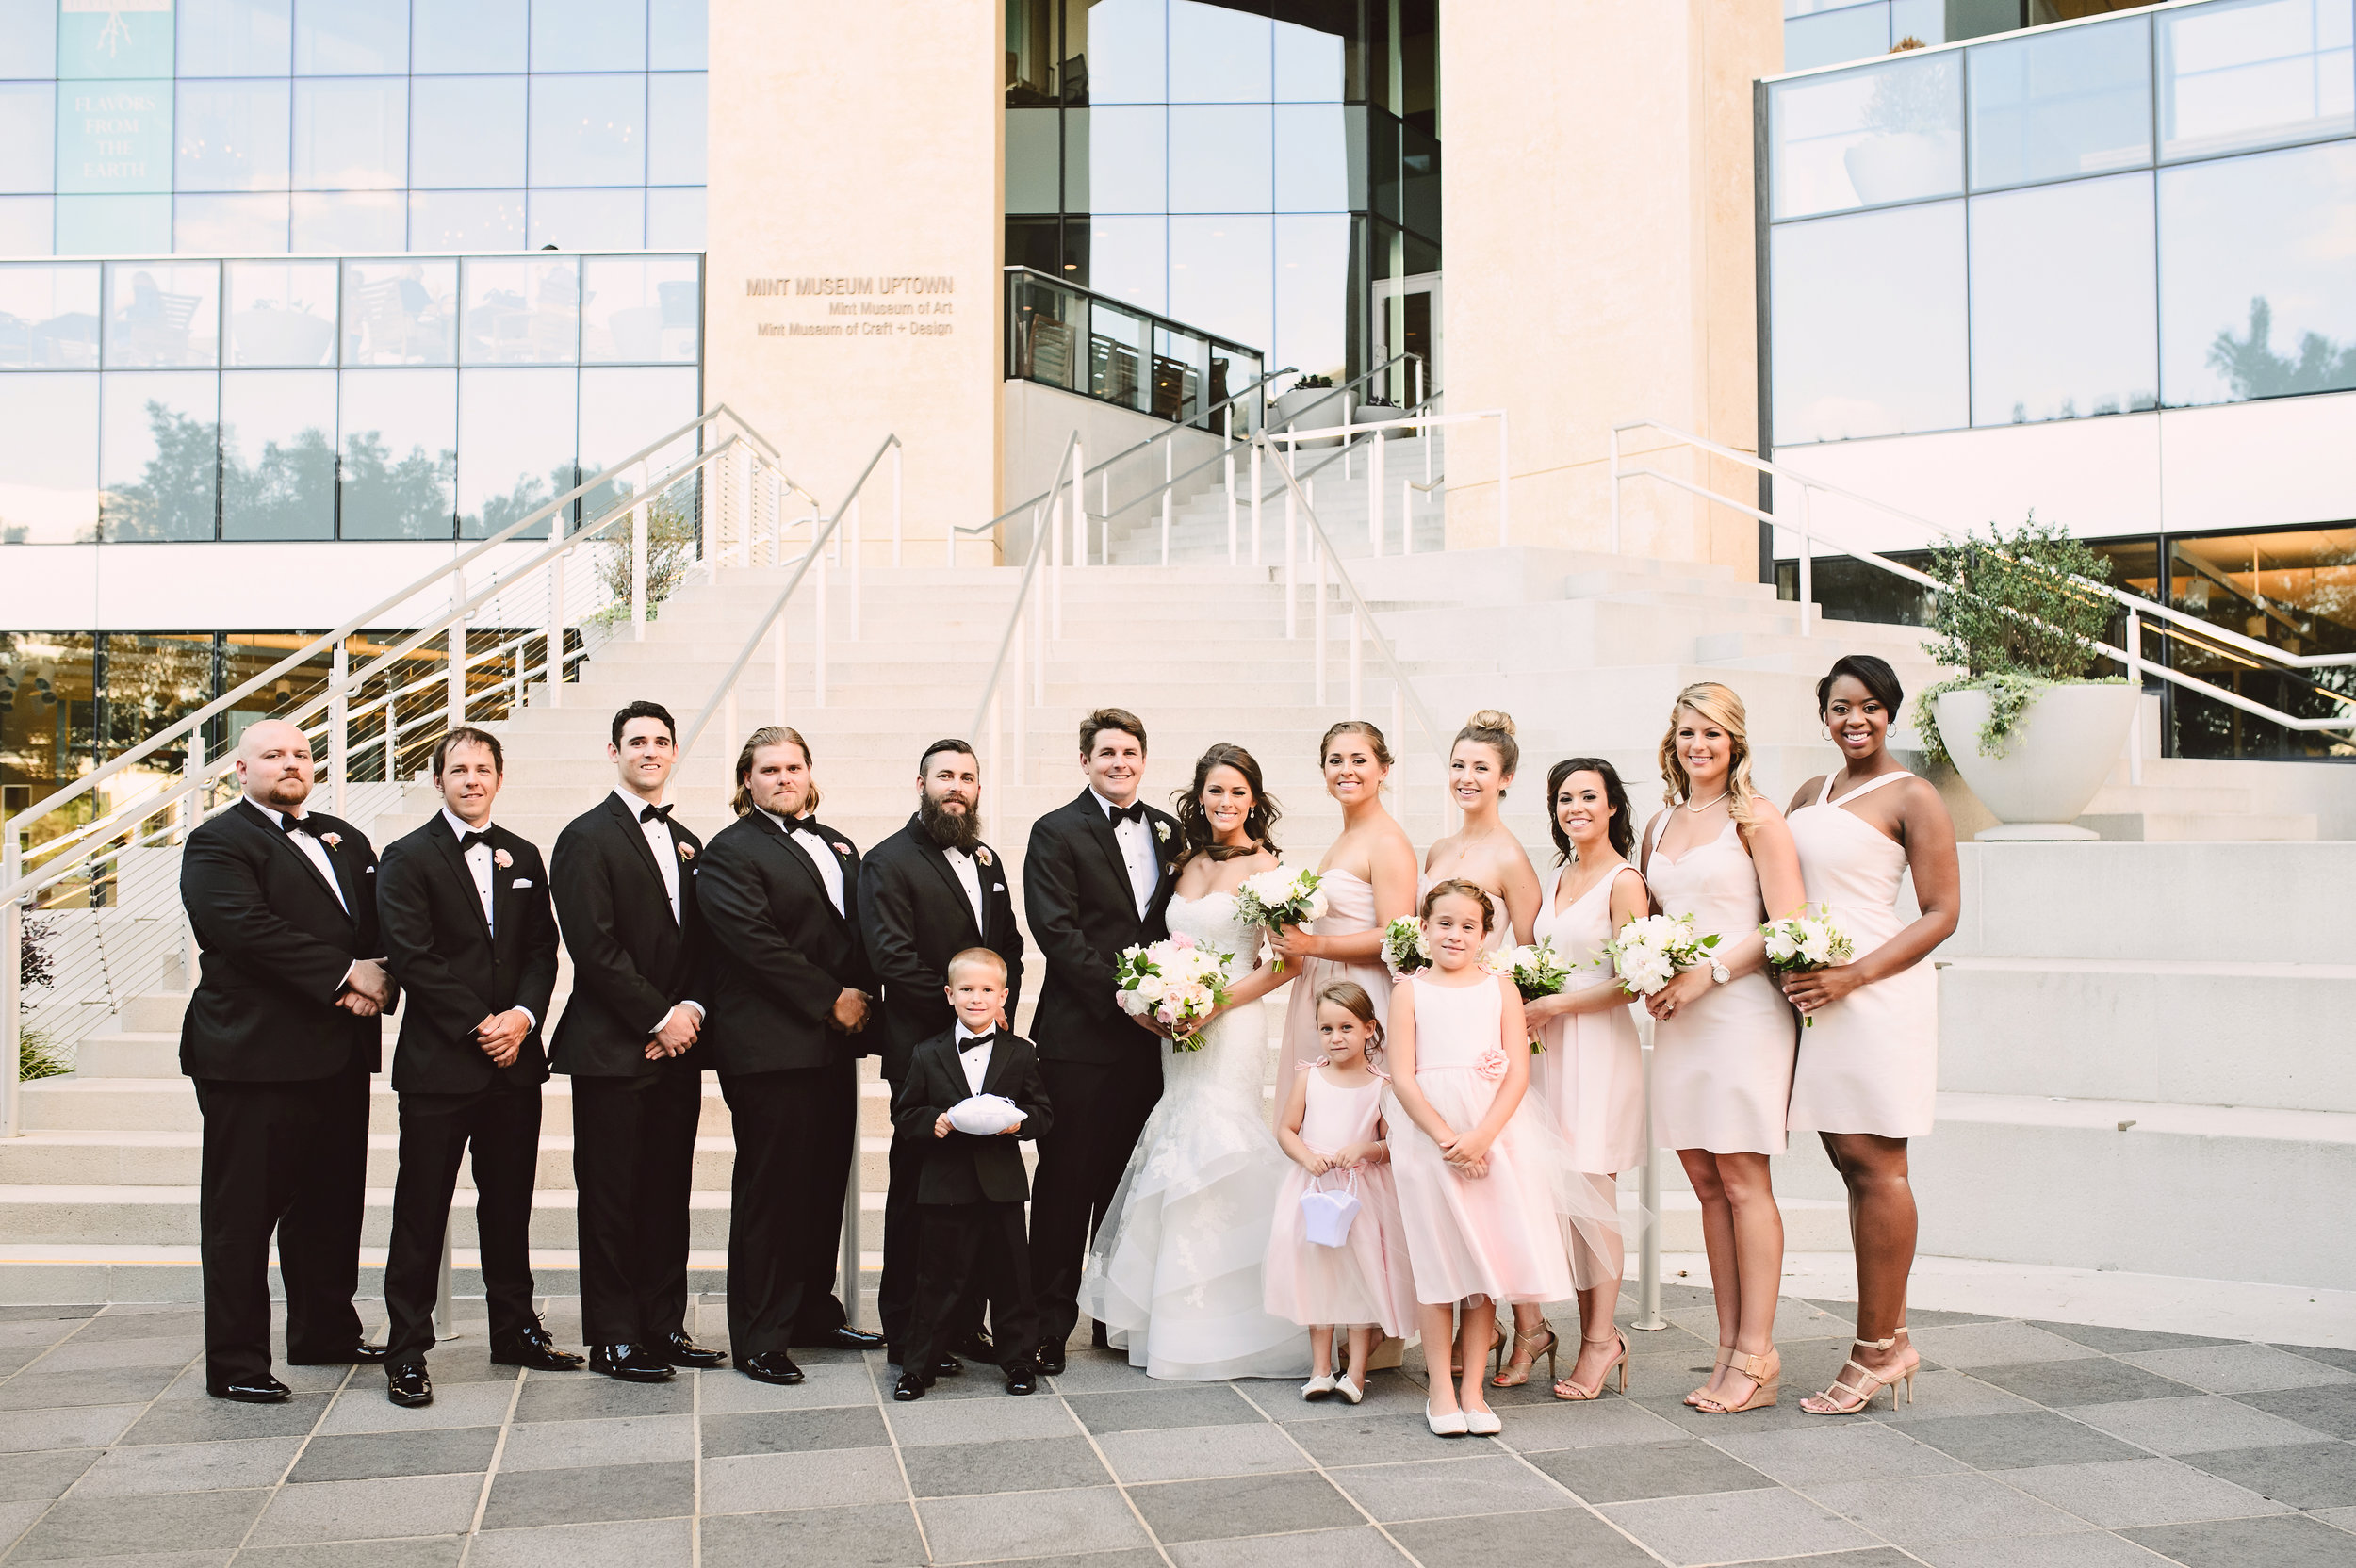 Wedding party style, blush J Crew bridesmaid dress, Mint Museum Uptown wedding in Charlotte, North Carolina by The Graceful Host